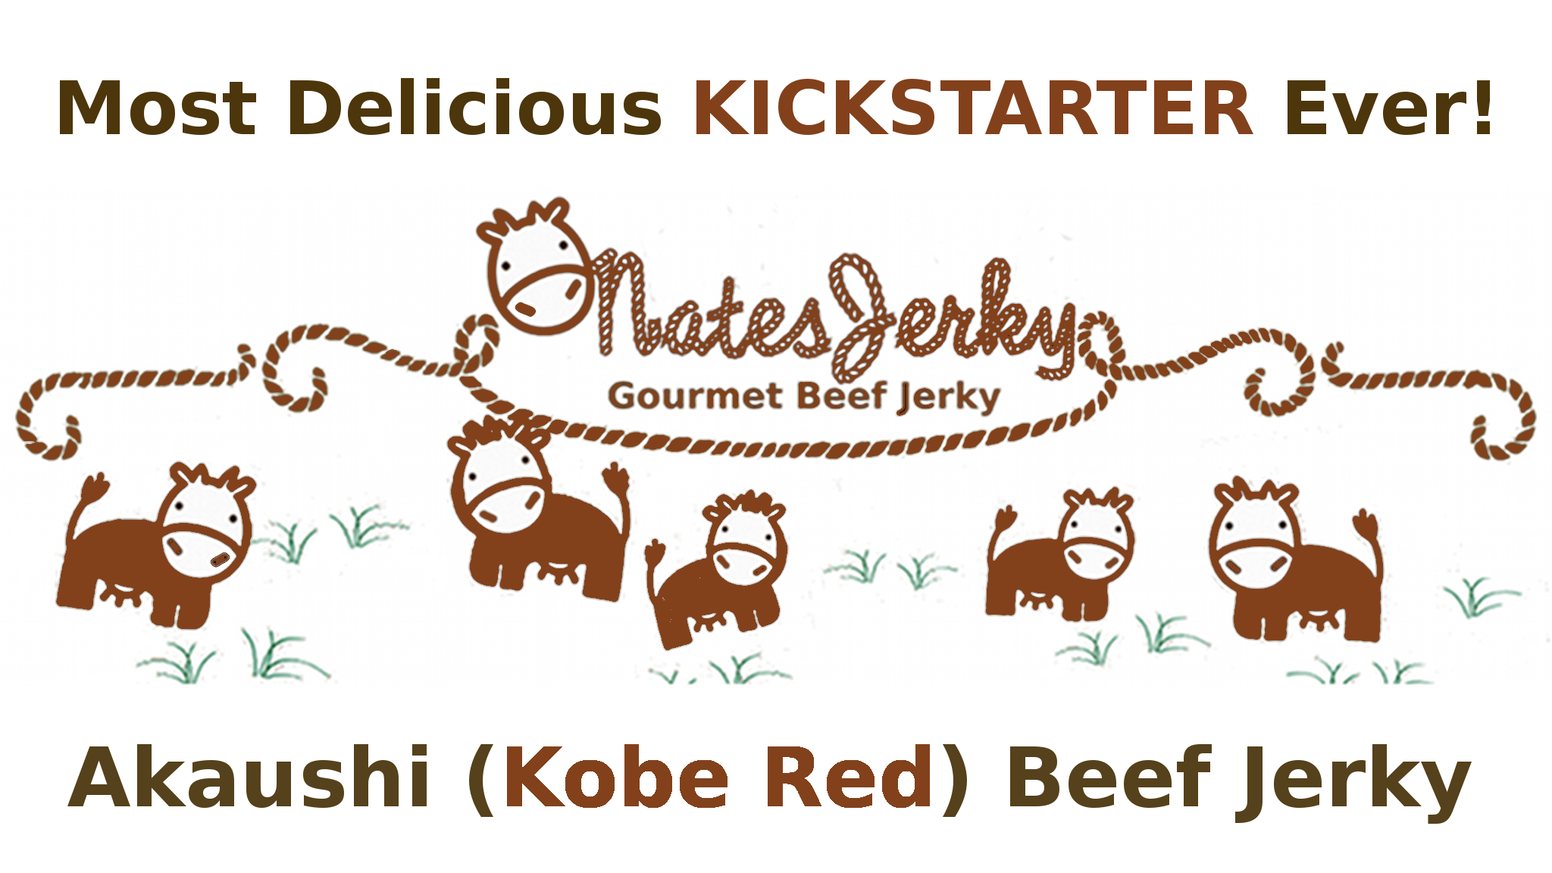 NatesJerky, the BEST jerky maker out of San Antonio, would like to bring to market the best quality Beef Jerky this world can have.